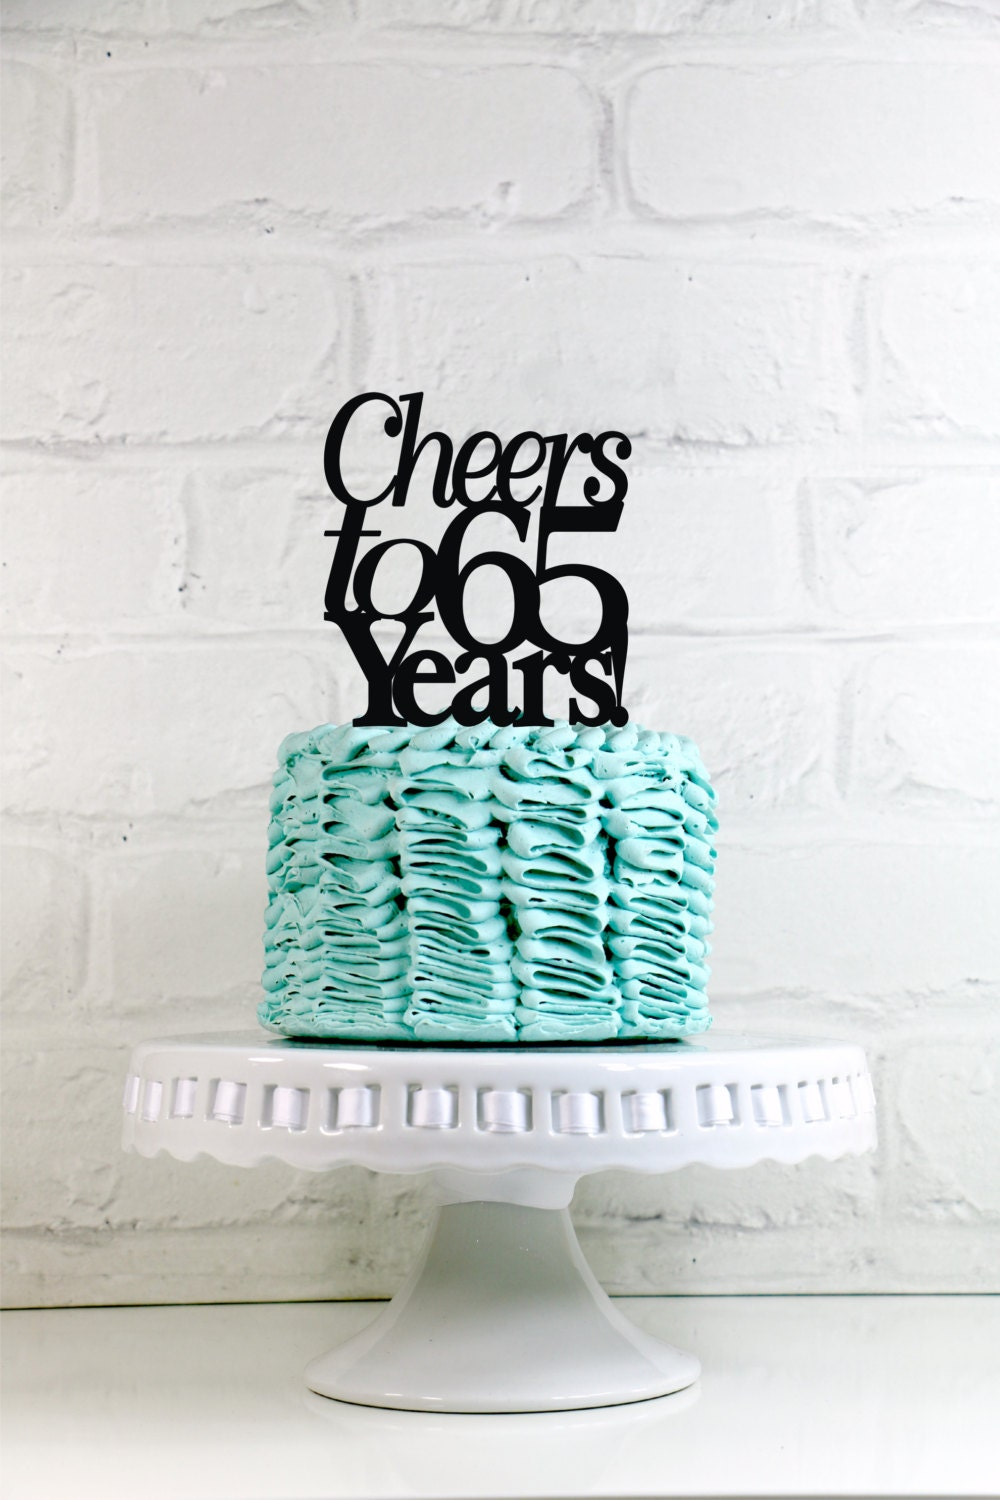 Cheers To 65 Years 65th Anniversary Or Birthday Cake Topper Or